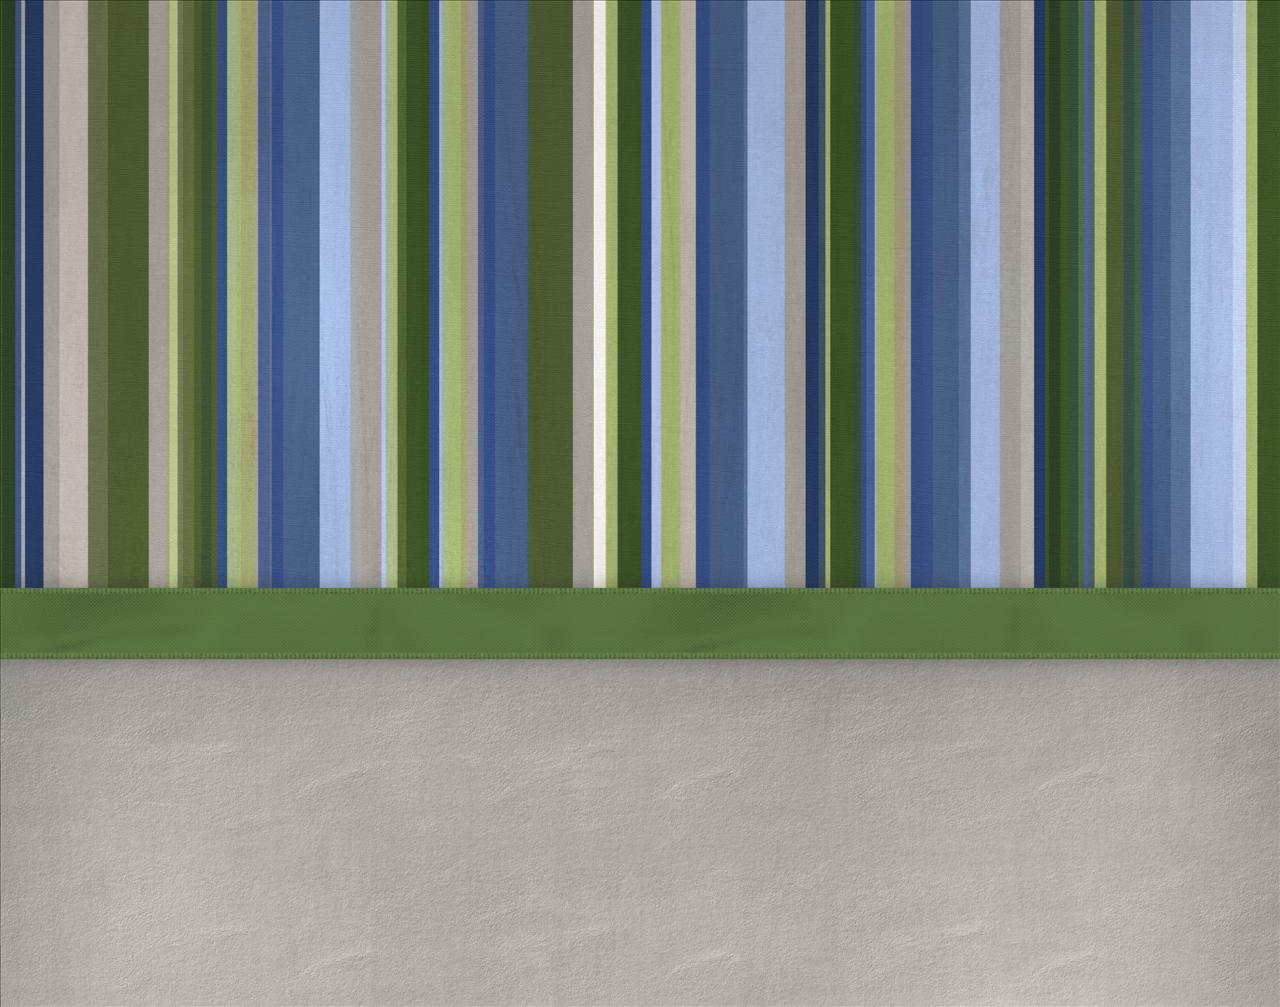 Gray with Stripes Backgrounds